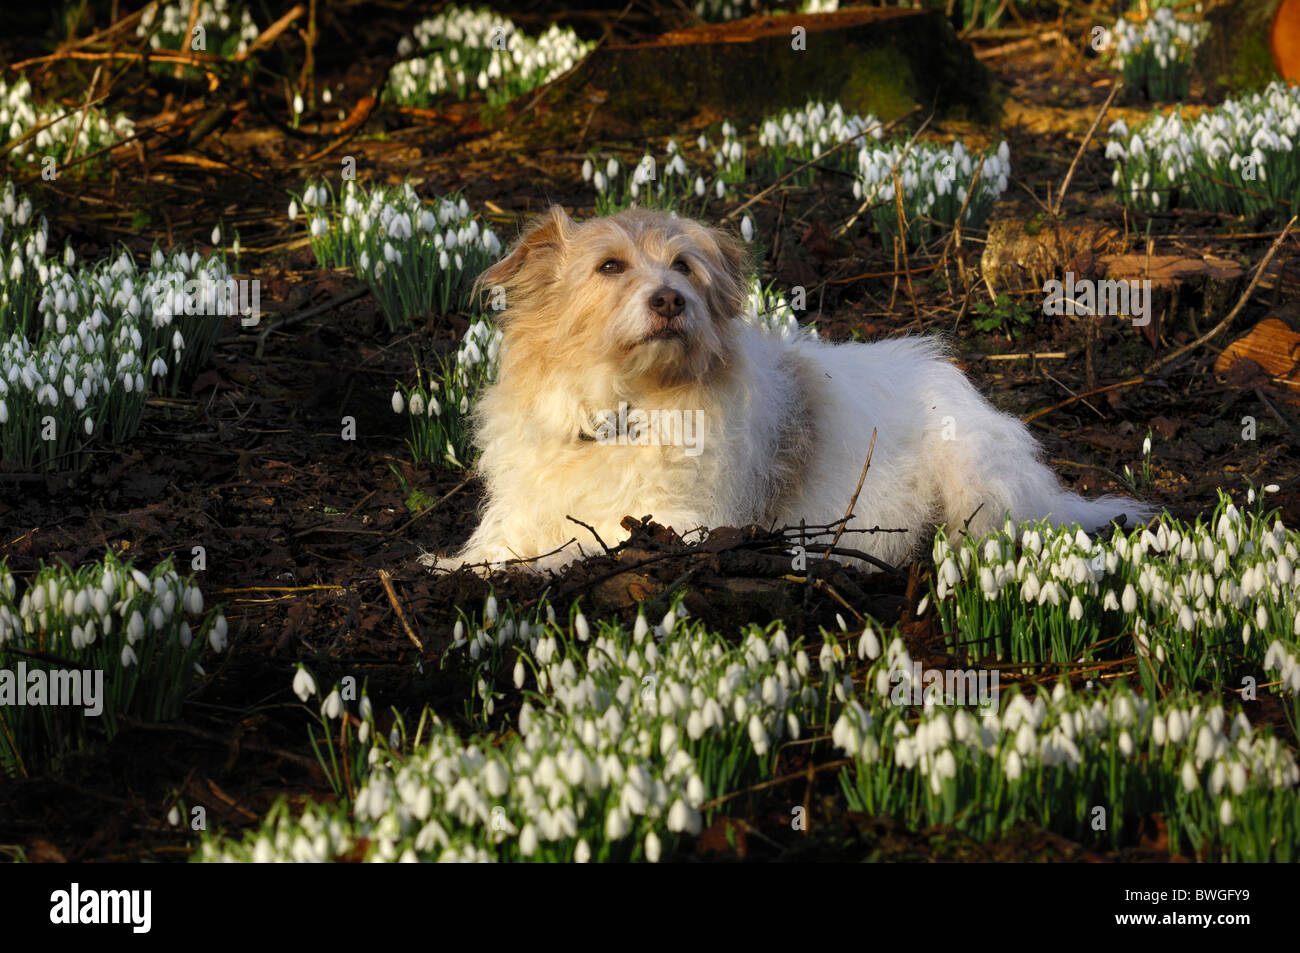 A scruffy Heinz 57 dog lying amongst some snowdrops. Dorset, UK February 2010 - Stock Image